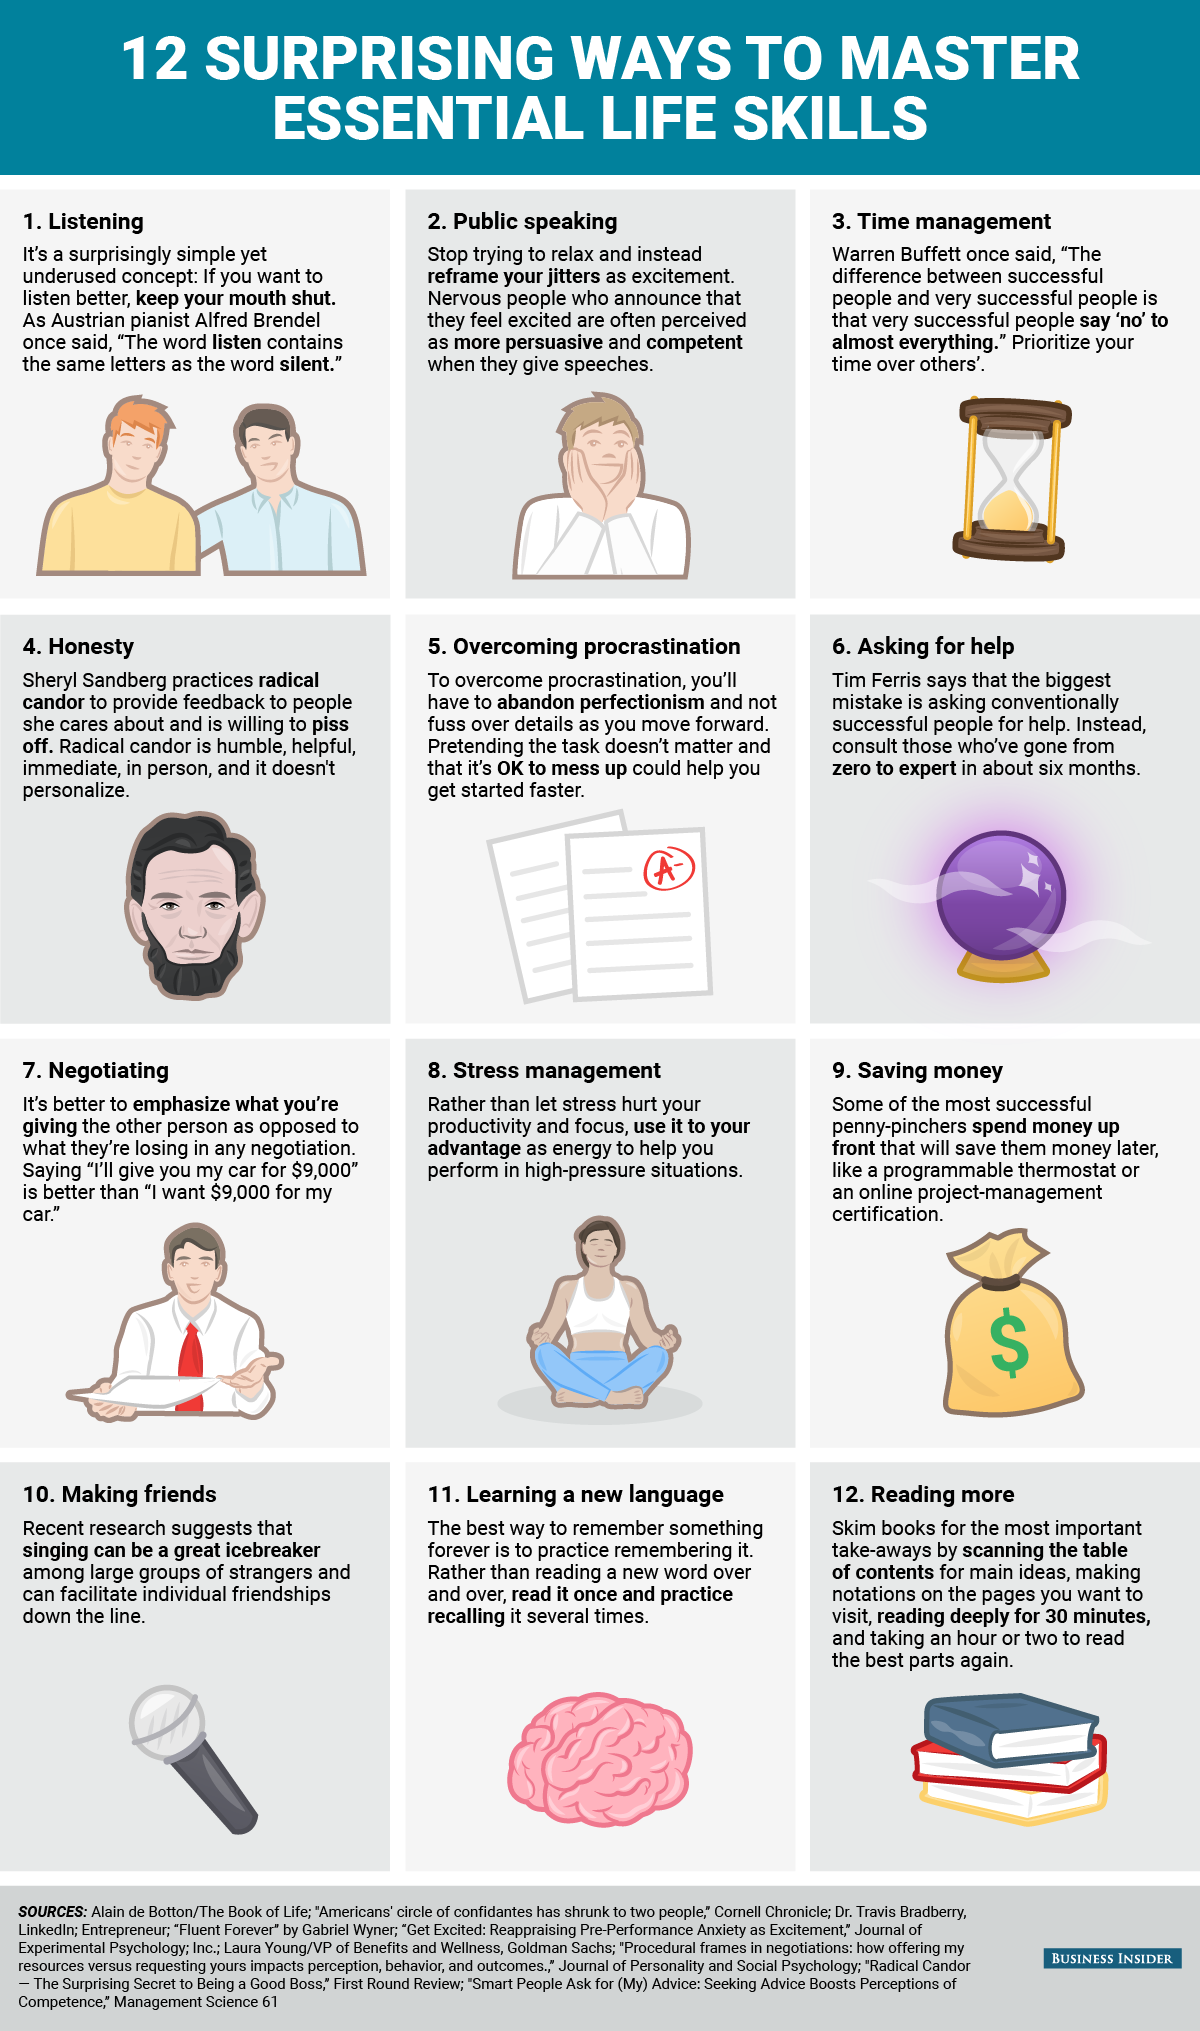 The Most Surprising Ways To Master 12 Essential Life